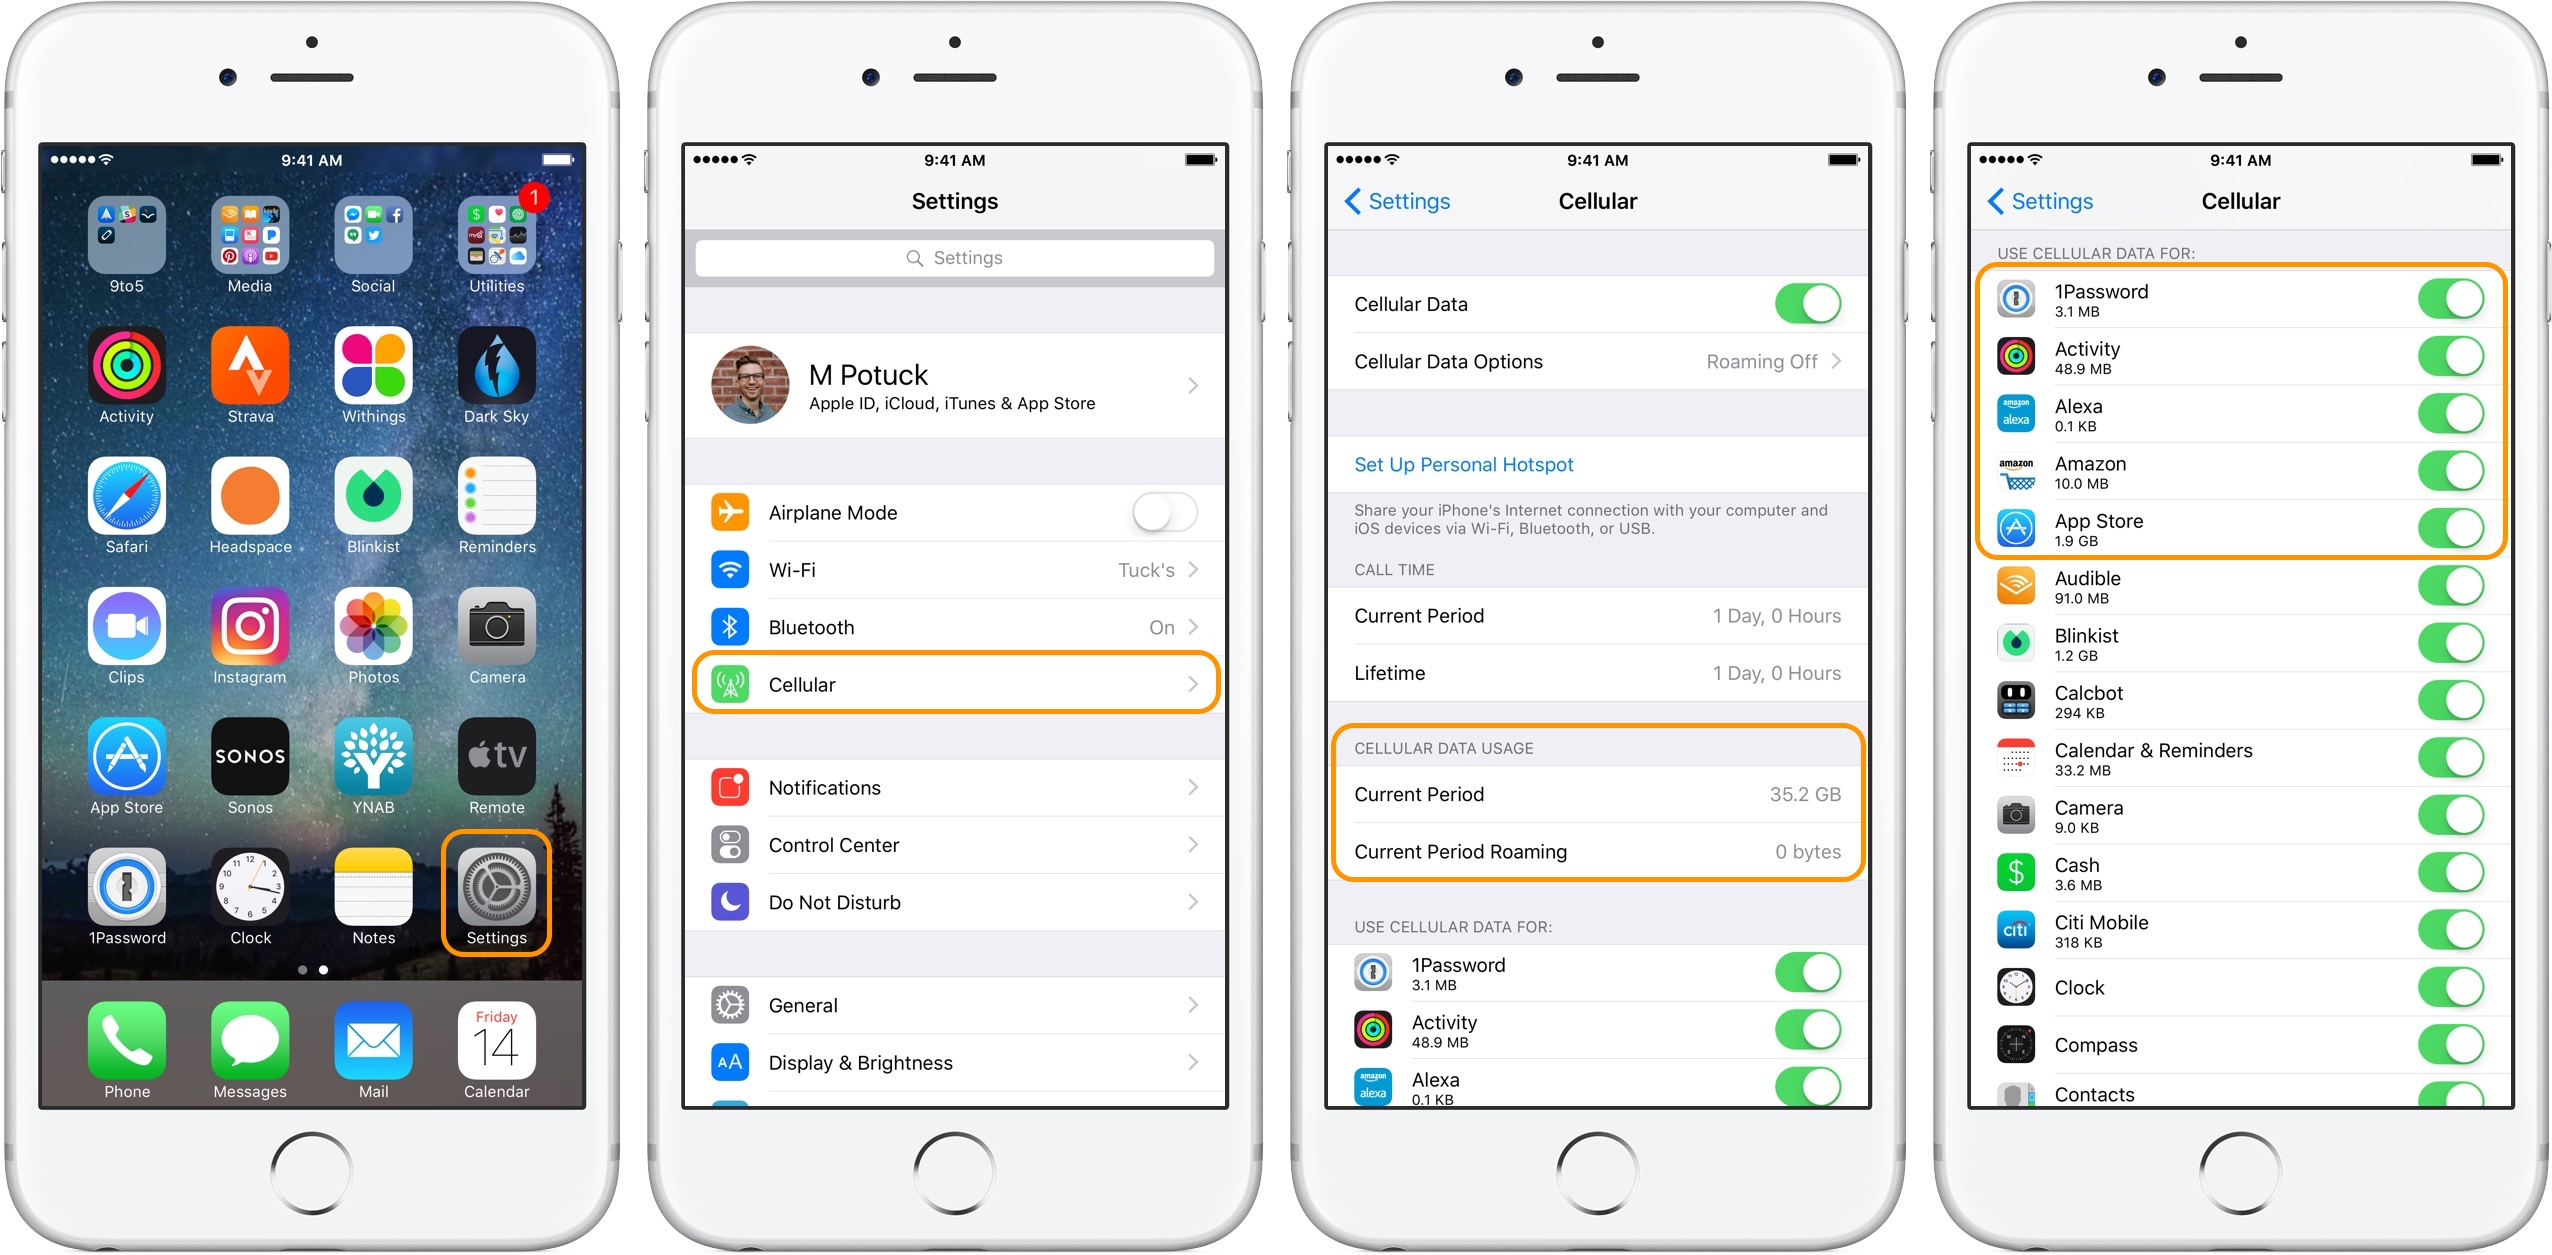 How to track and manage cellular data - 9to5Mac